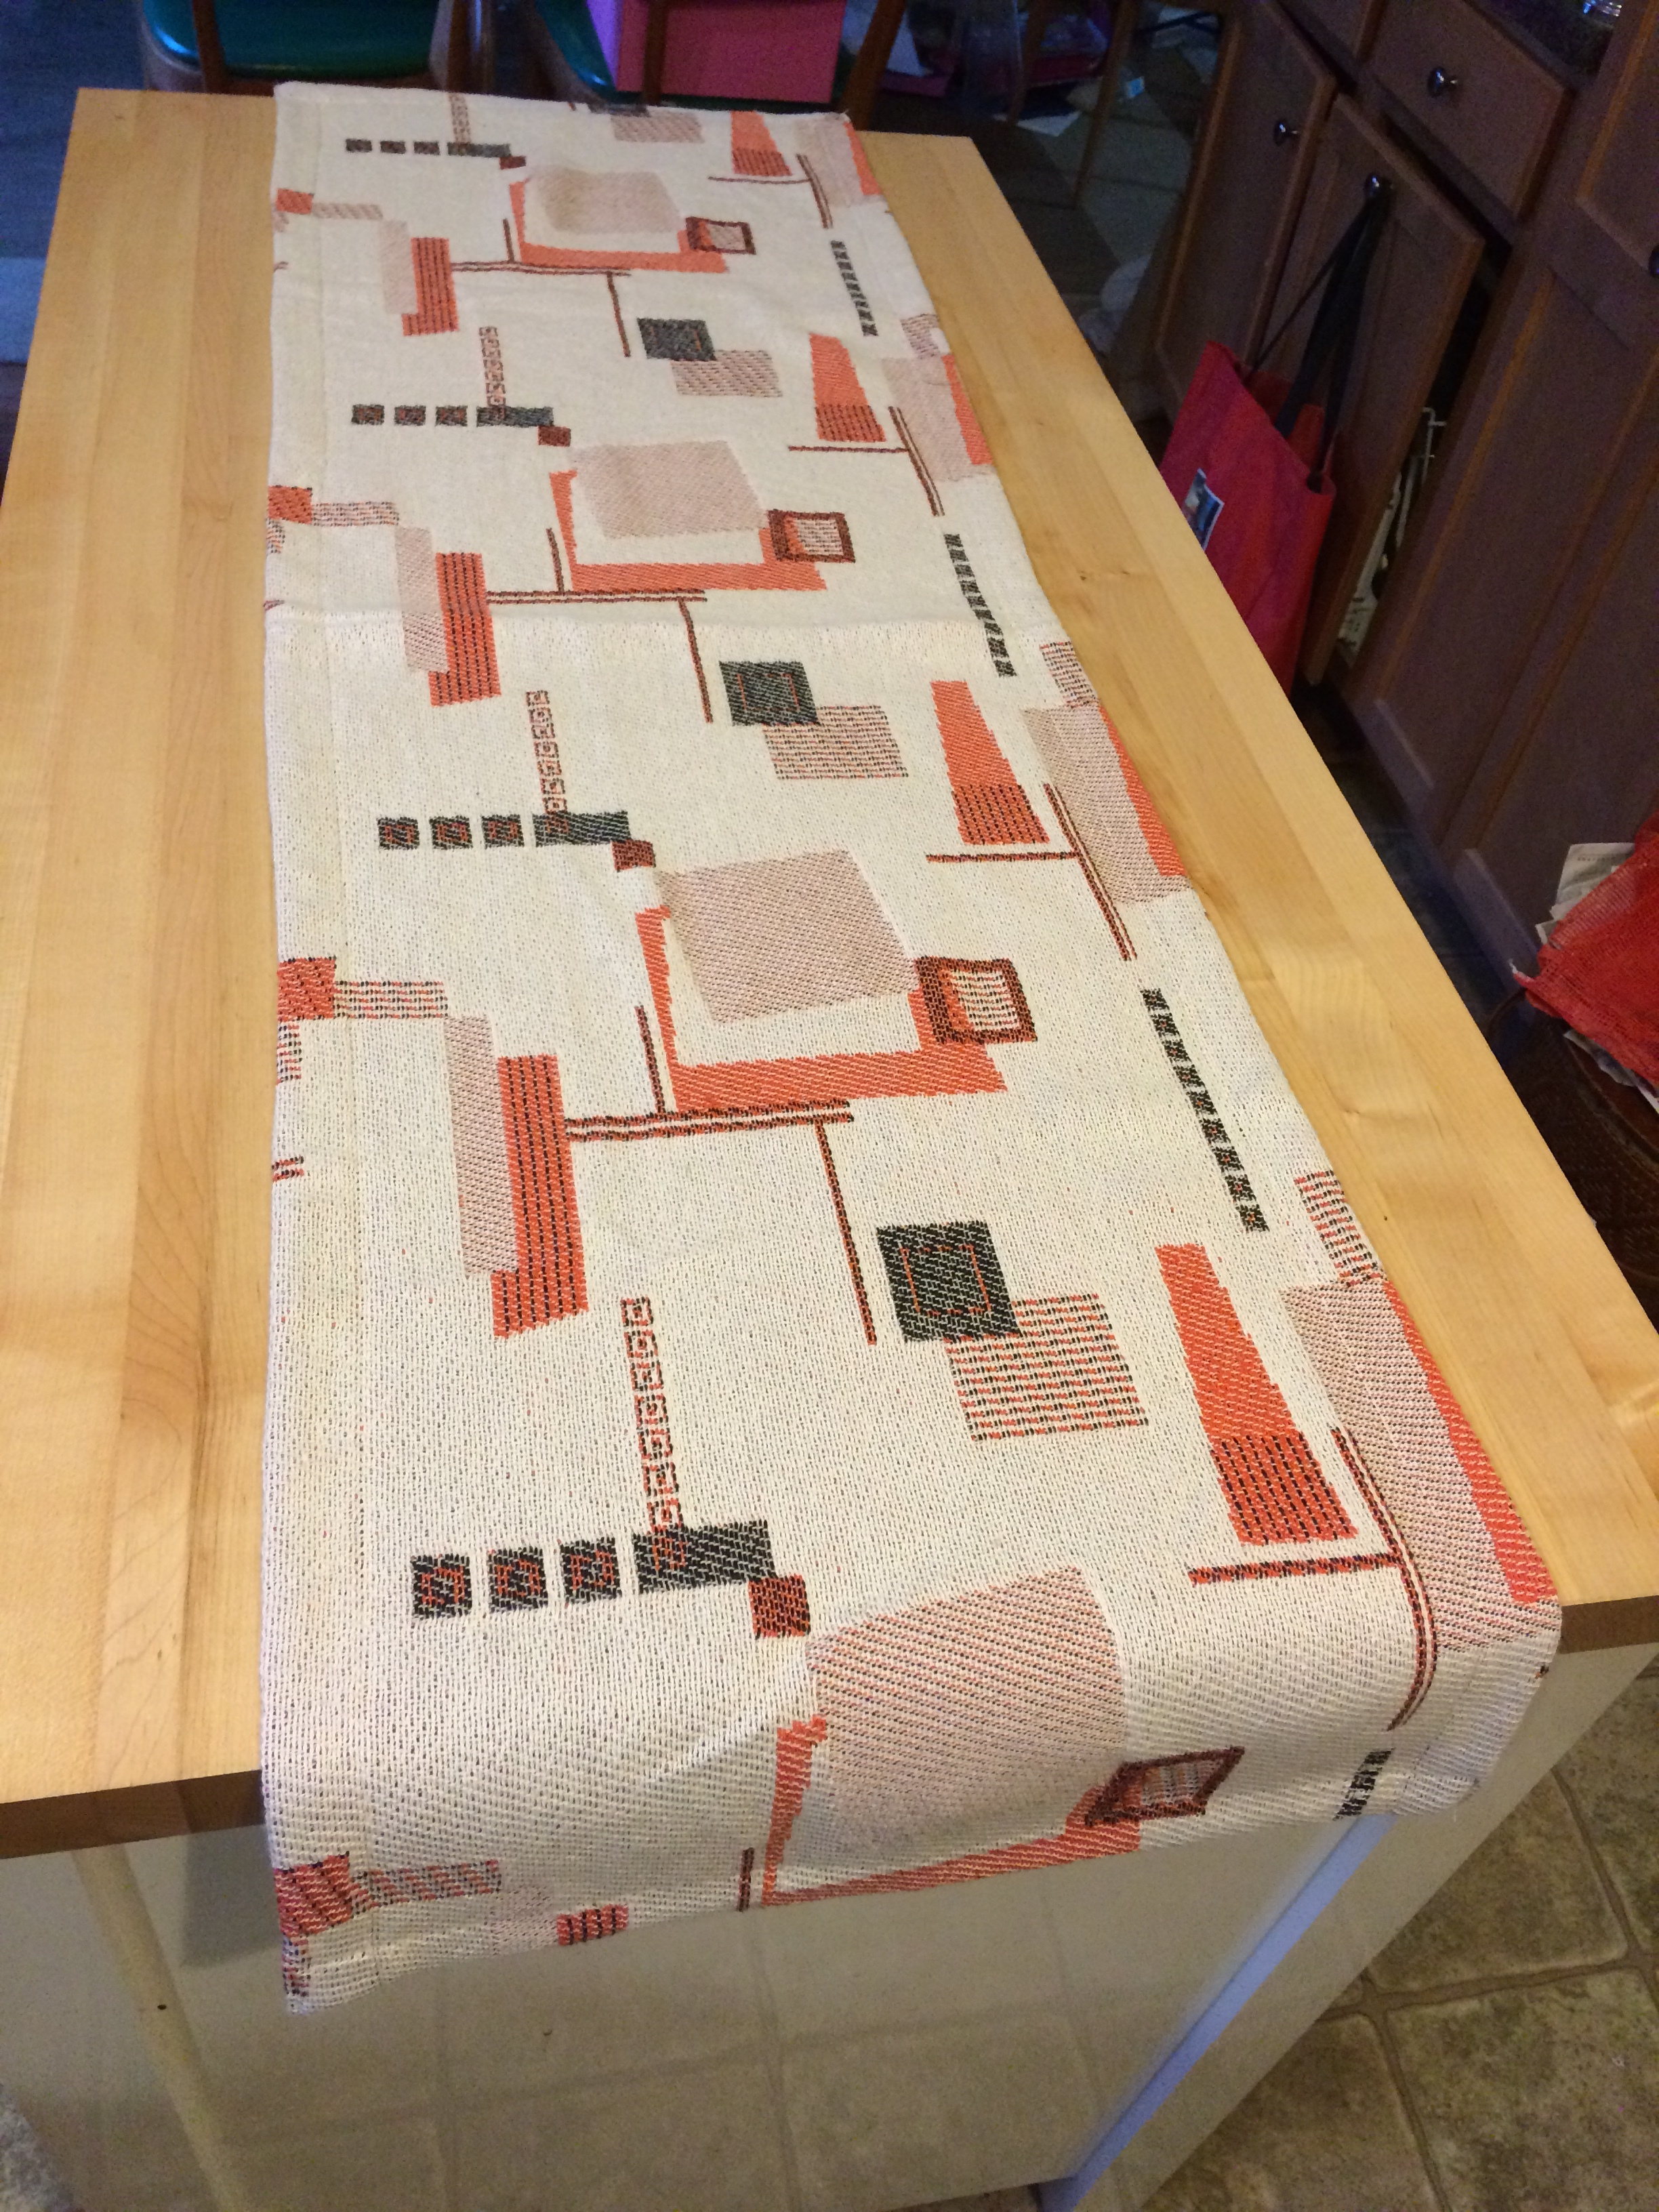 Same orange and coordinating threads as the clocks in this great Atomic geometric design.  This runner is same construction as the clocks including an upgraded bound hem. Also $25 plus ship. https://www.ebay.com/itm/322359478602